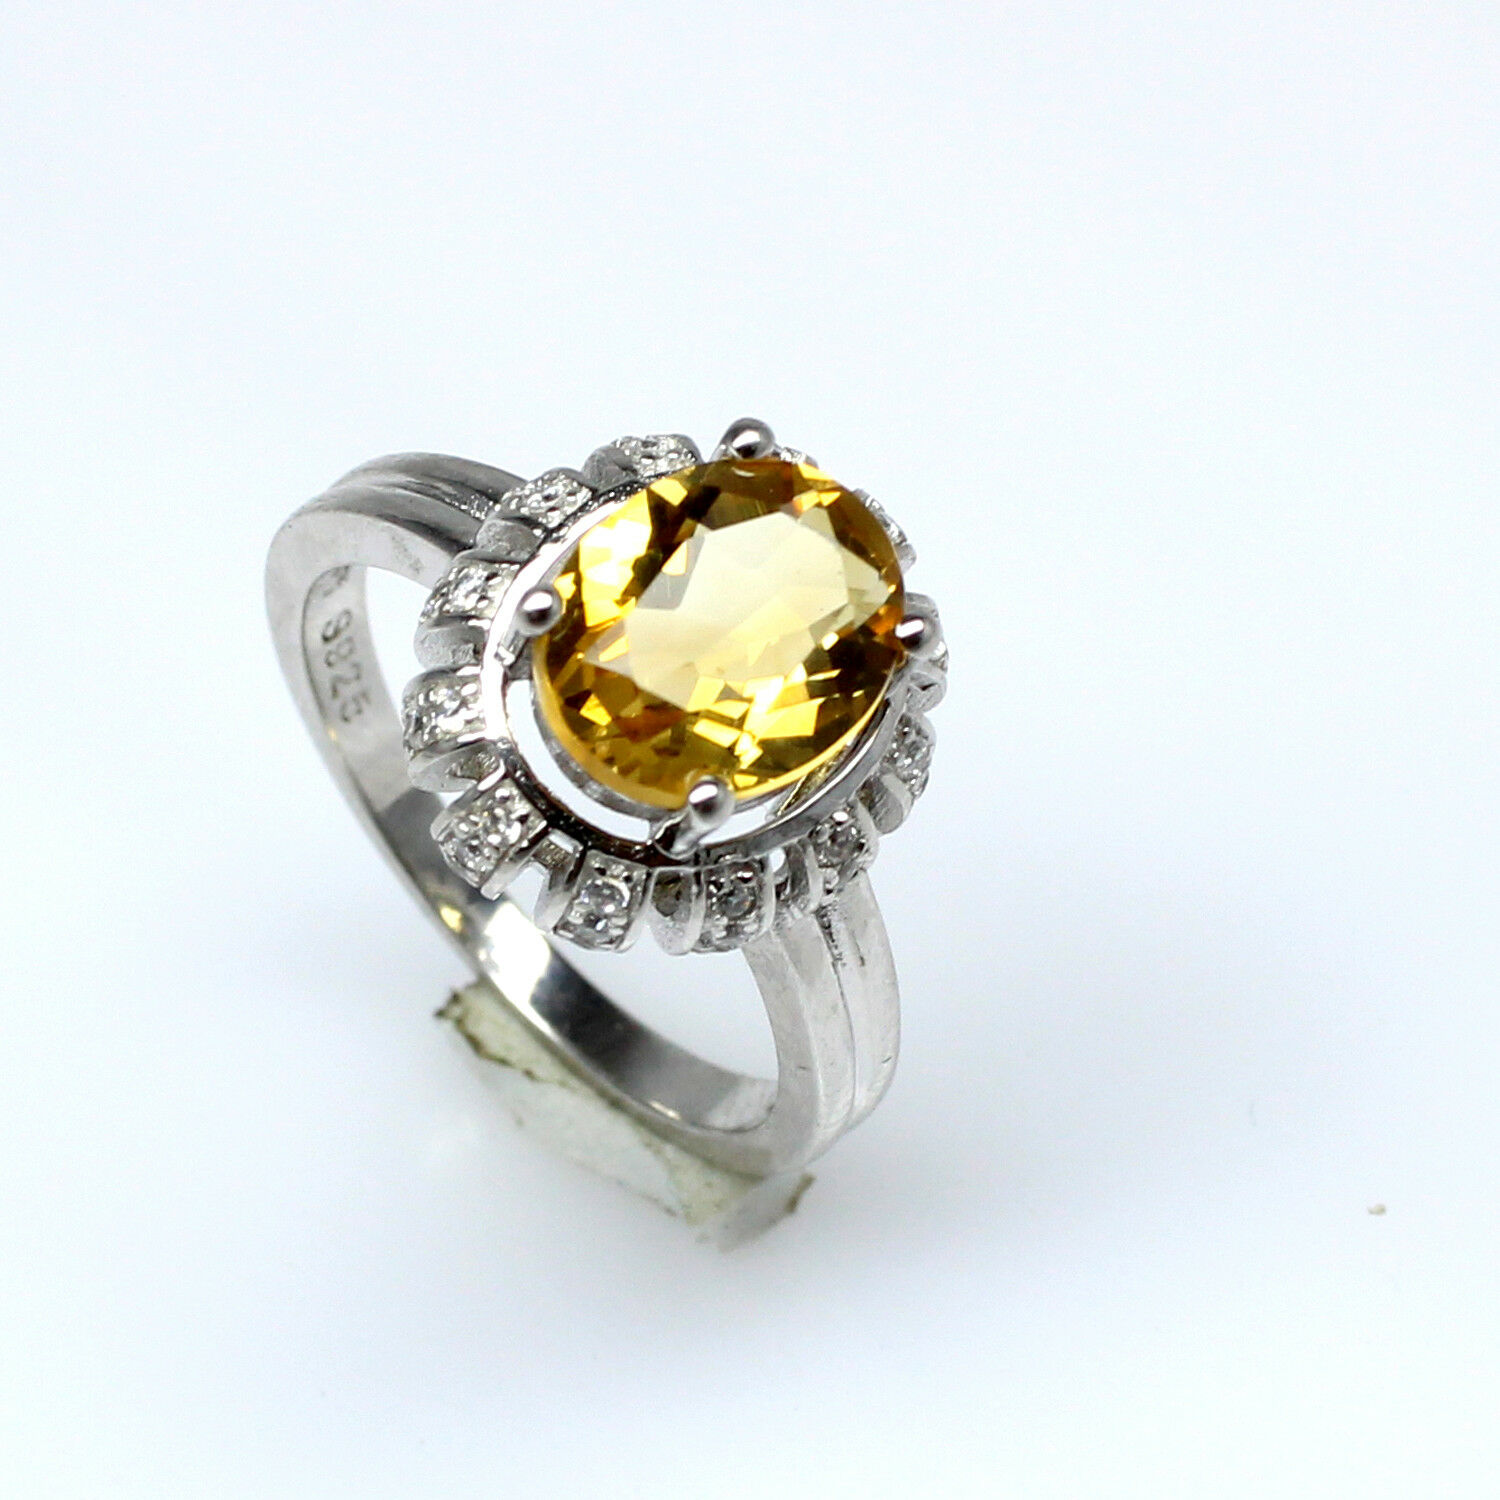 0030201a84c2e Citrine Yellow Natural Faceted Women's WSR-055 Ring Designer ...